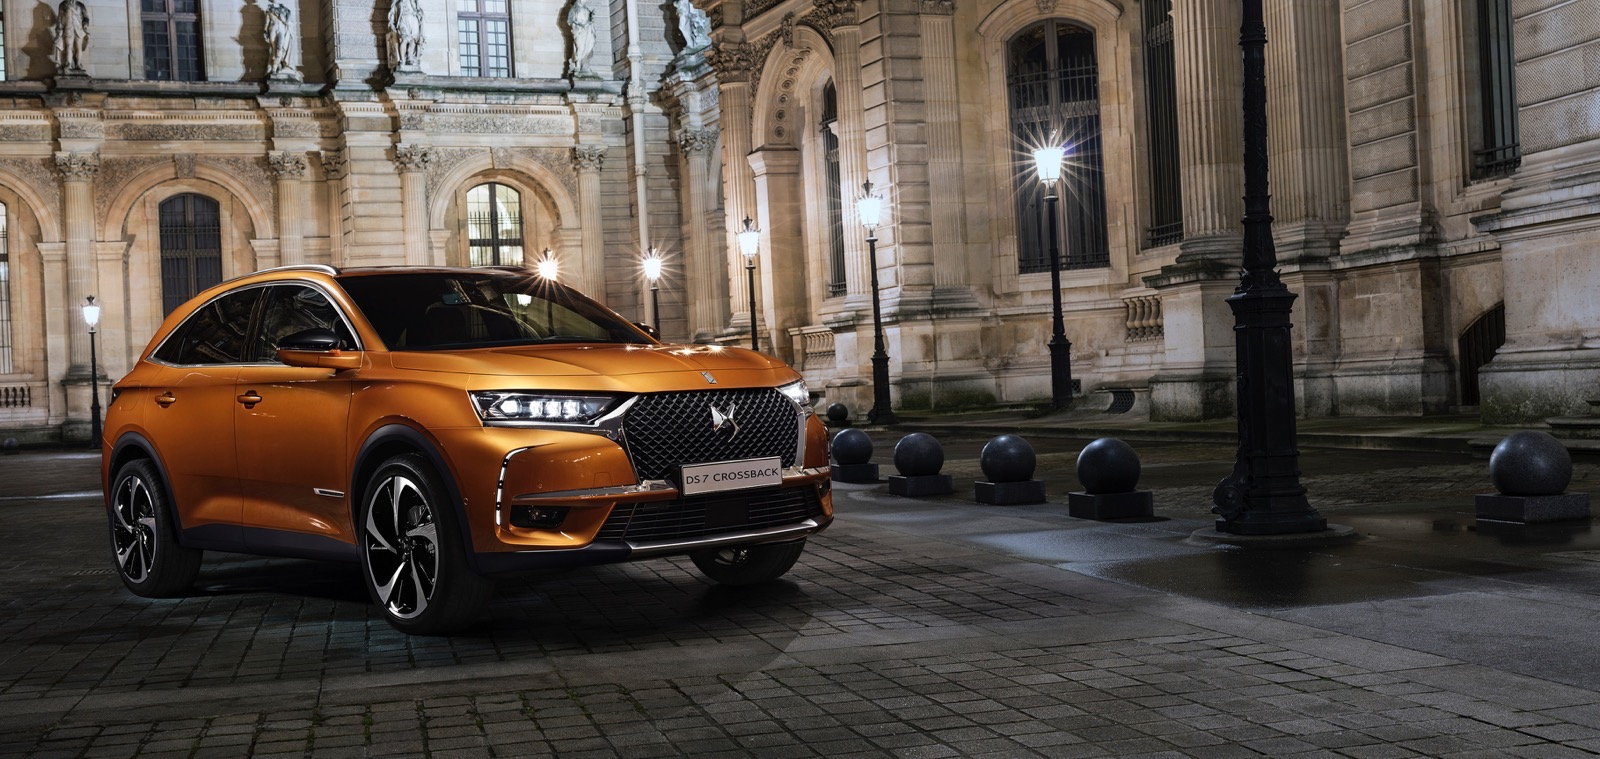 DS_7_Crossback_15